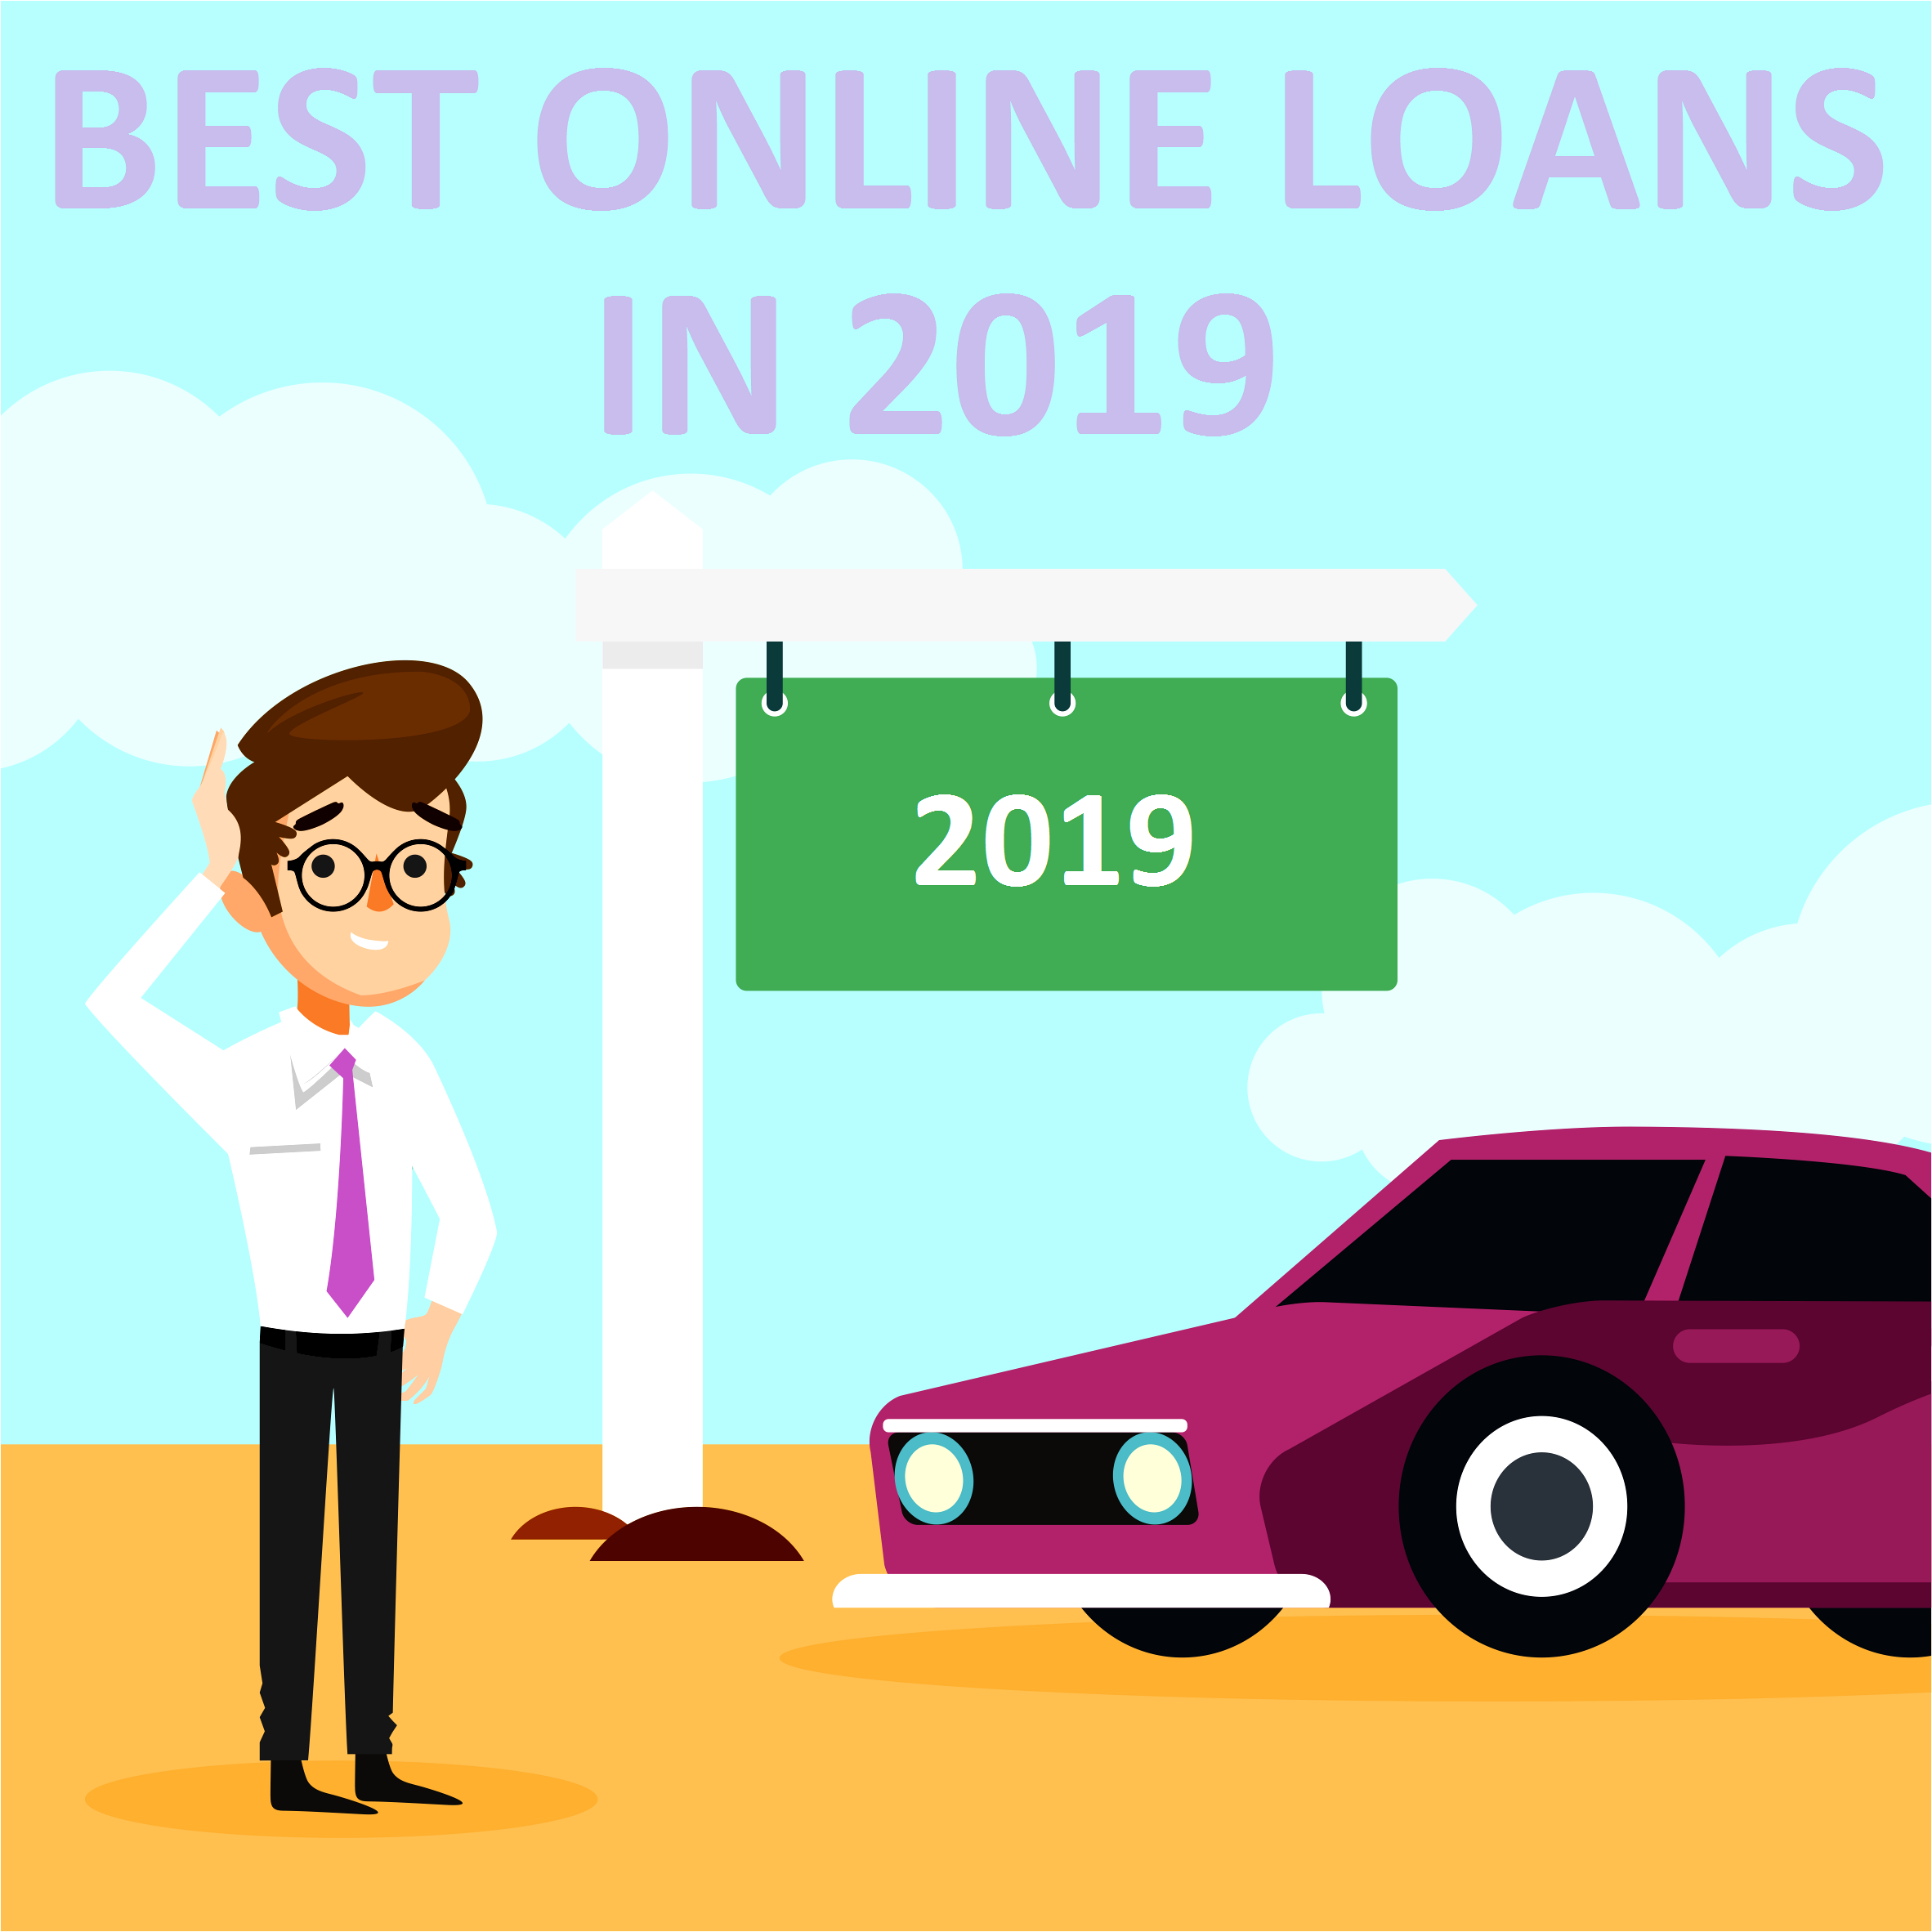 Best Online Loans in 2019